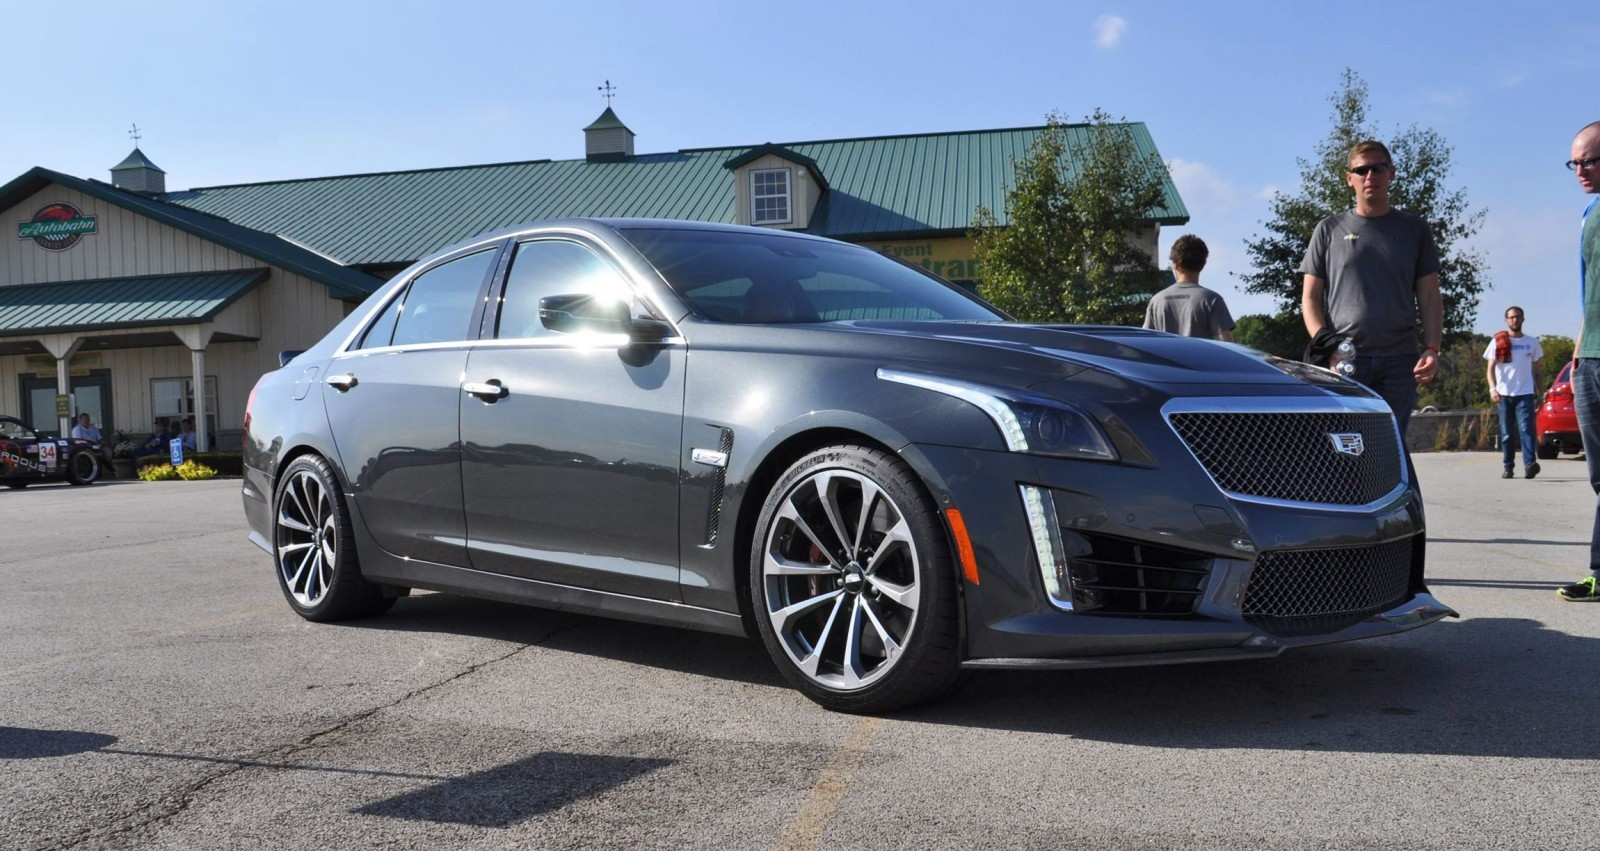 2016 cadillac cts v phantom grey and carbon package 31. Black Bedroom Furniture Sets. Home Design Ideas